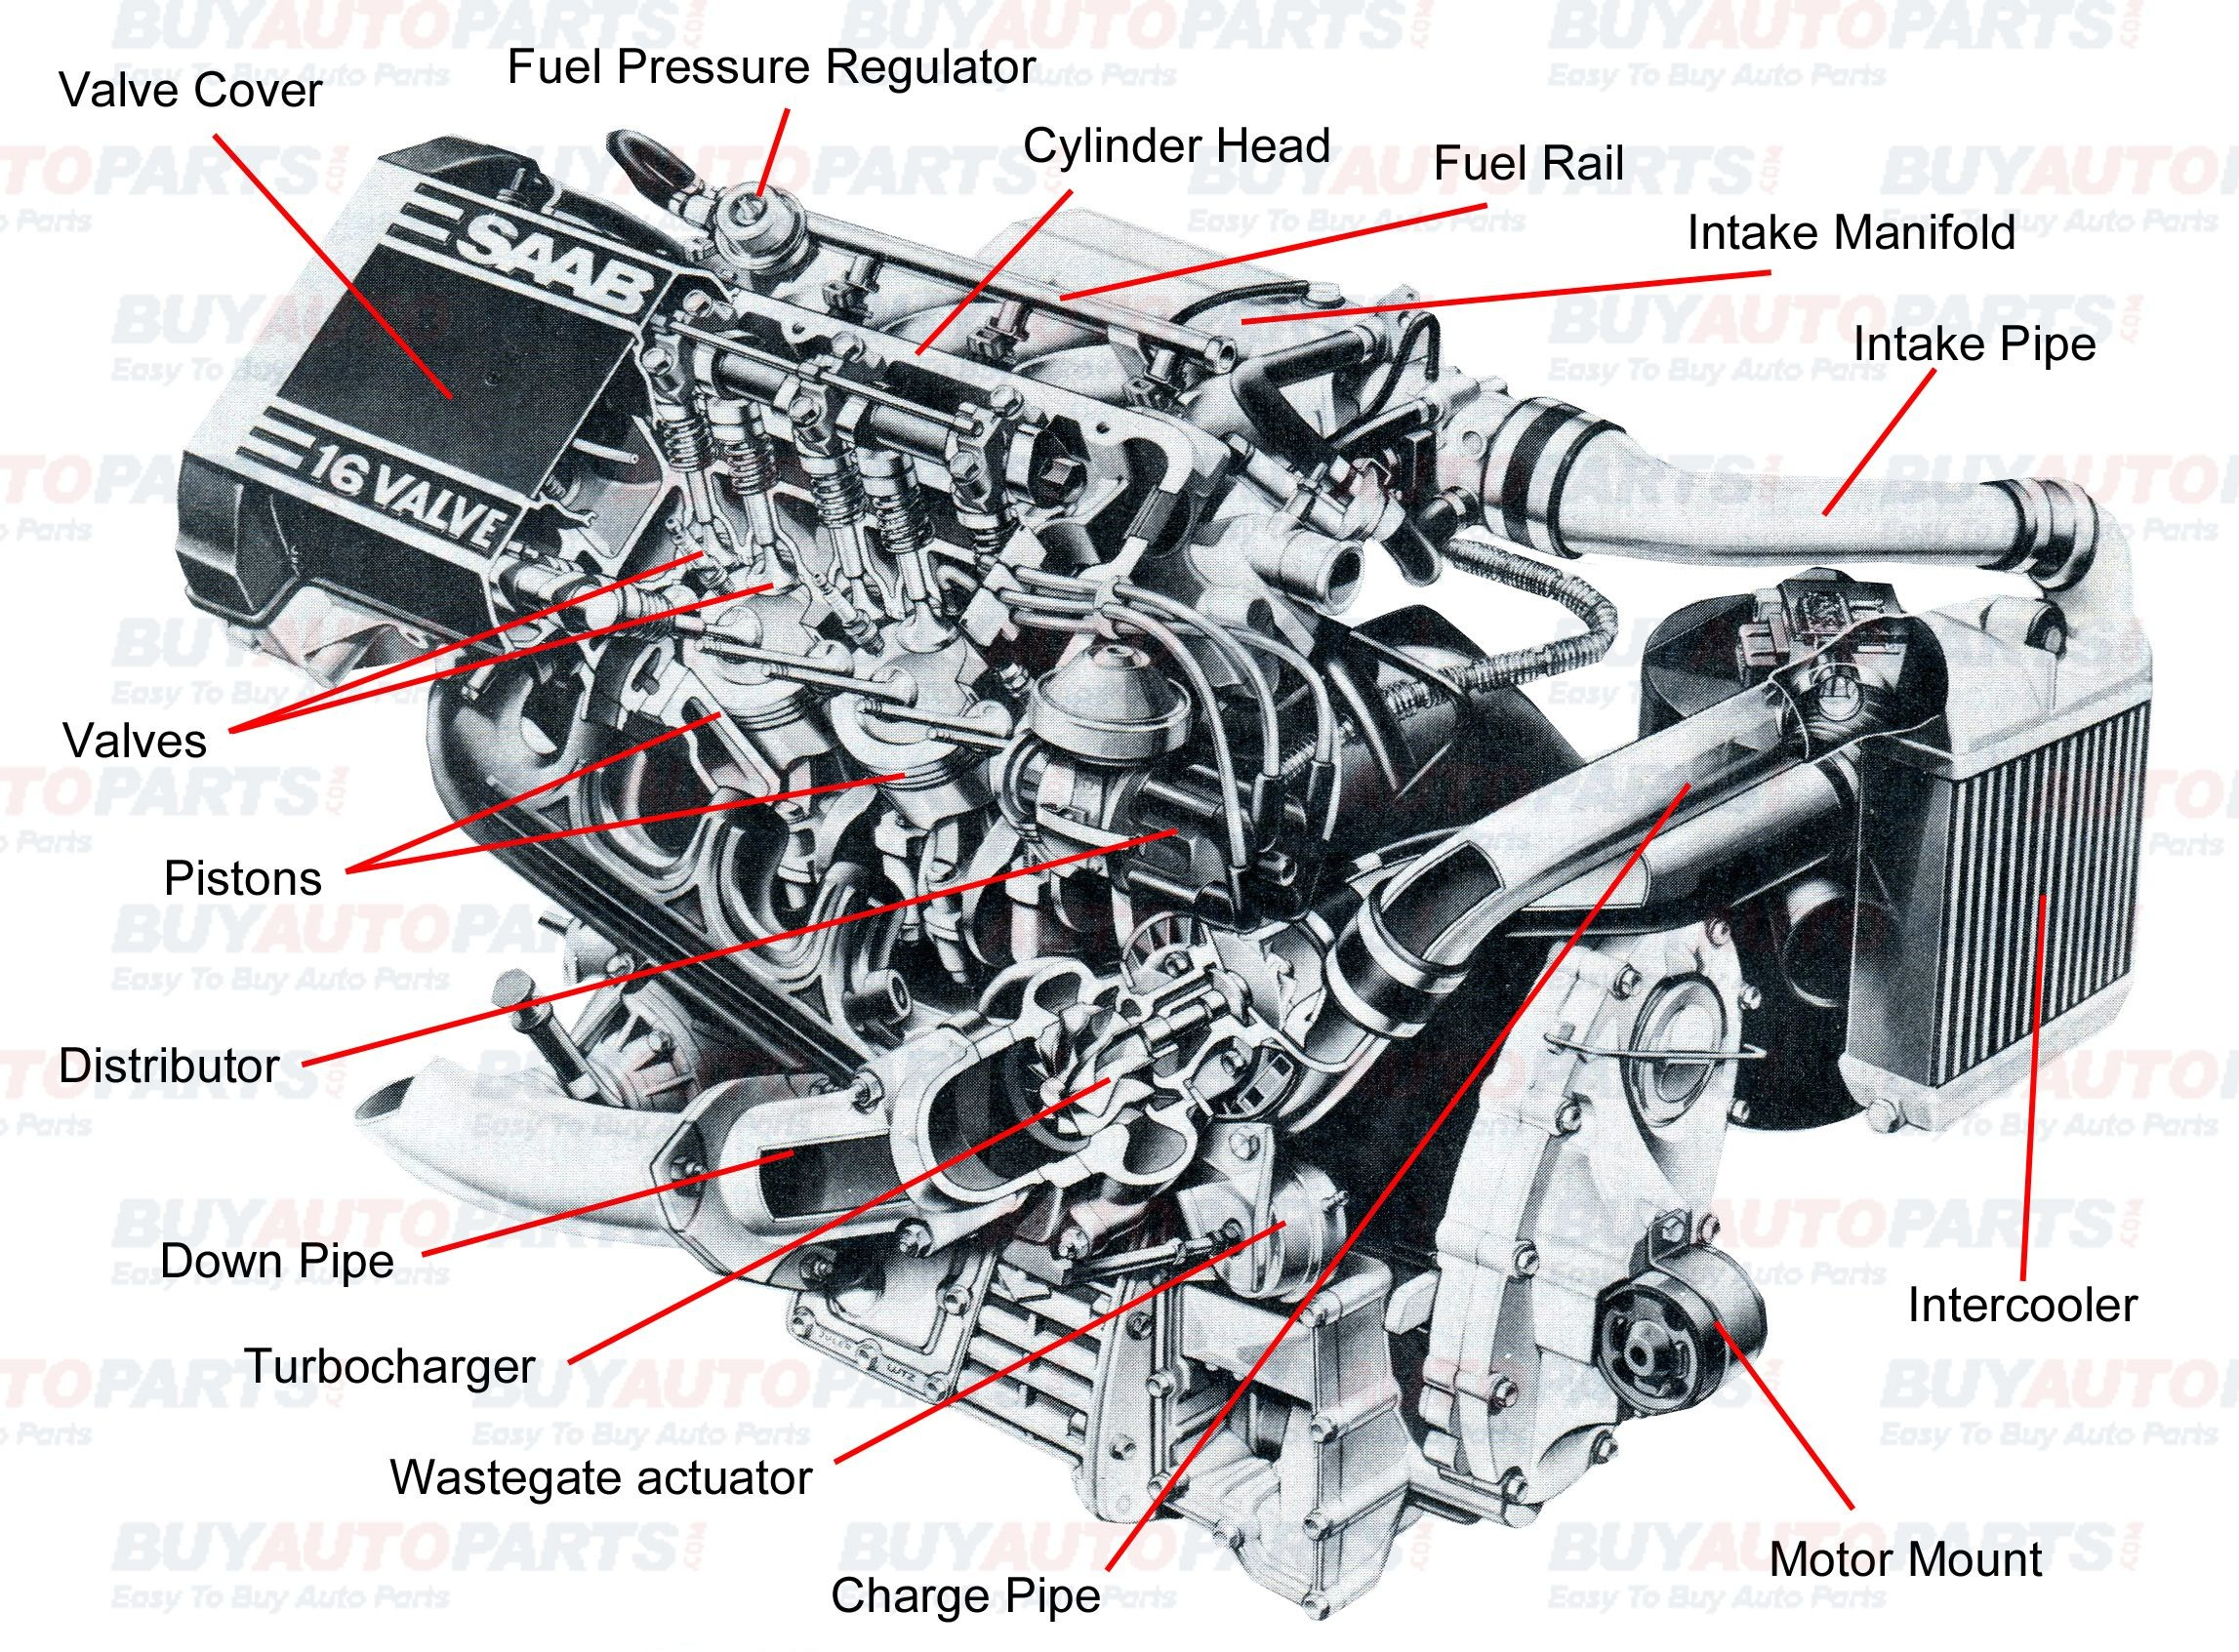 Labelled Diagram Of Car Parts Pin by Jimmiejanet Testellamwfz On What Does An Engine with Turbo Of Labelled Diagram Of Car Parts